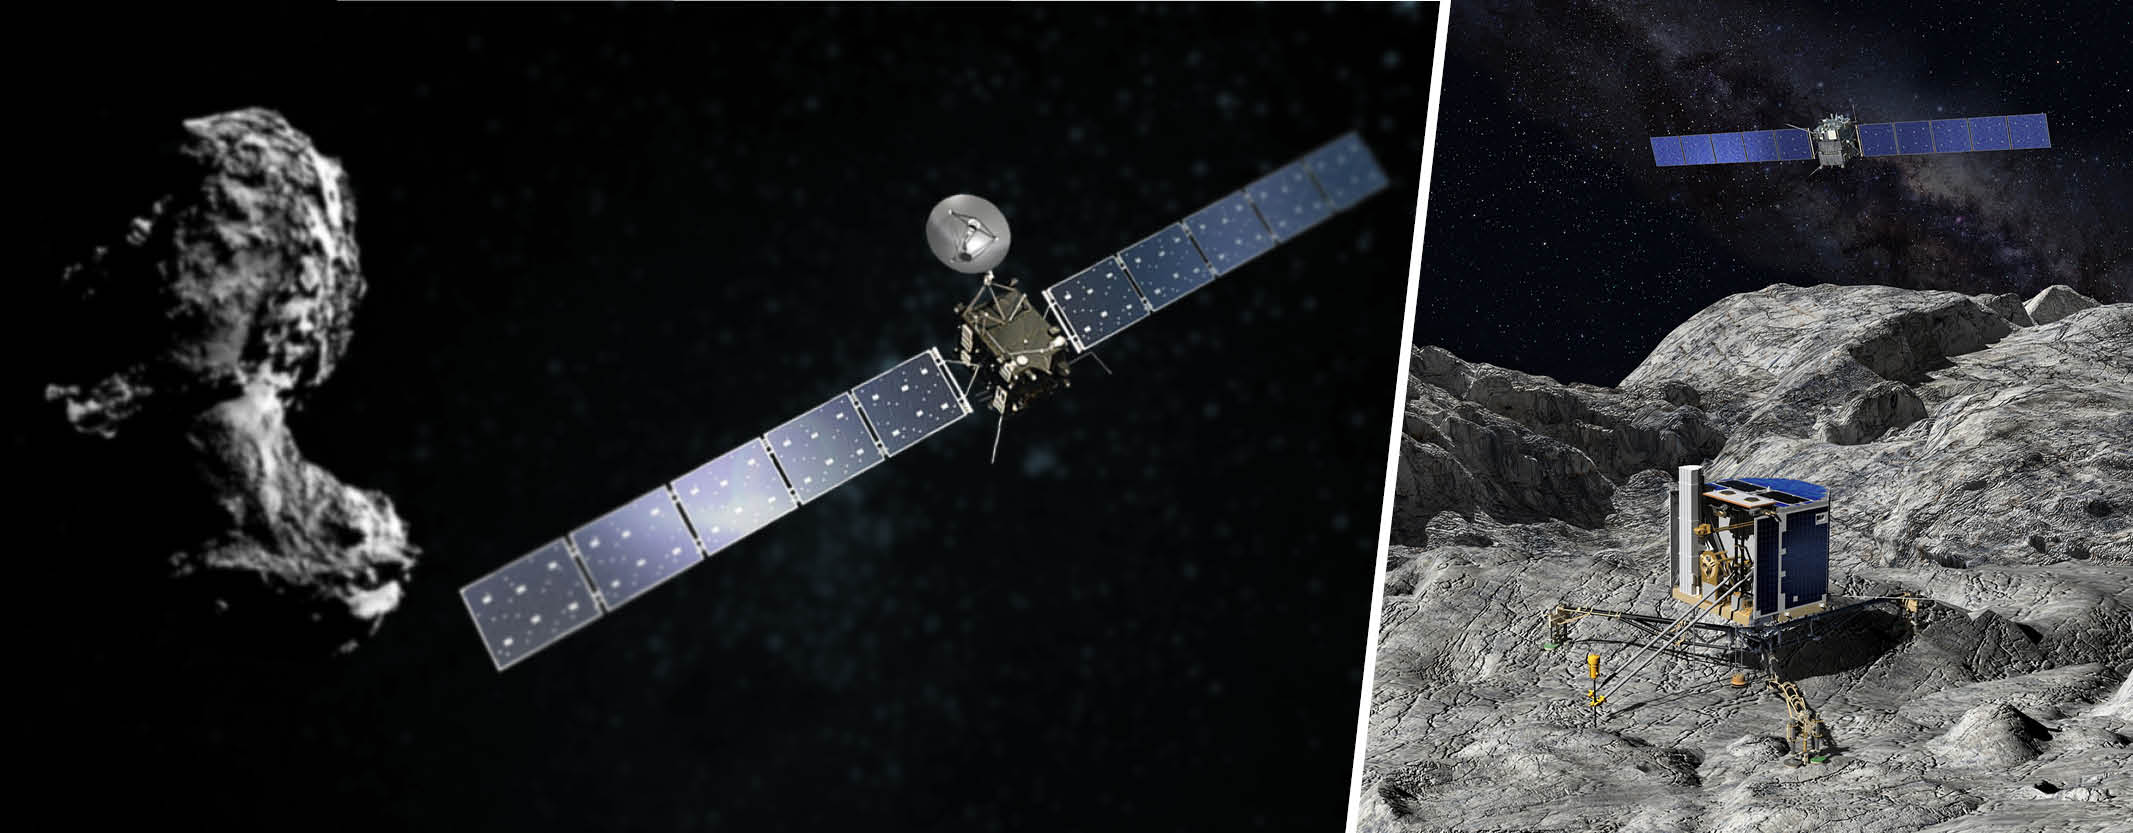 rosetta, philae, syrlinks, technologie spatiale, balise de detresse, simy